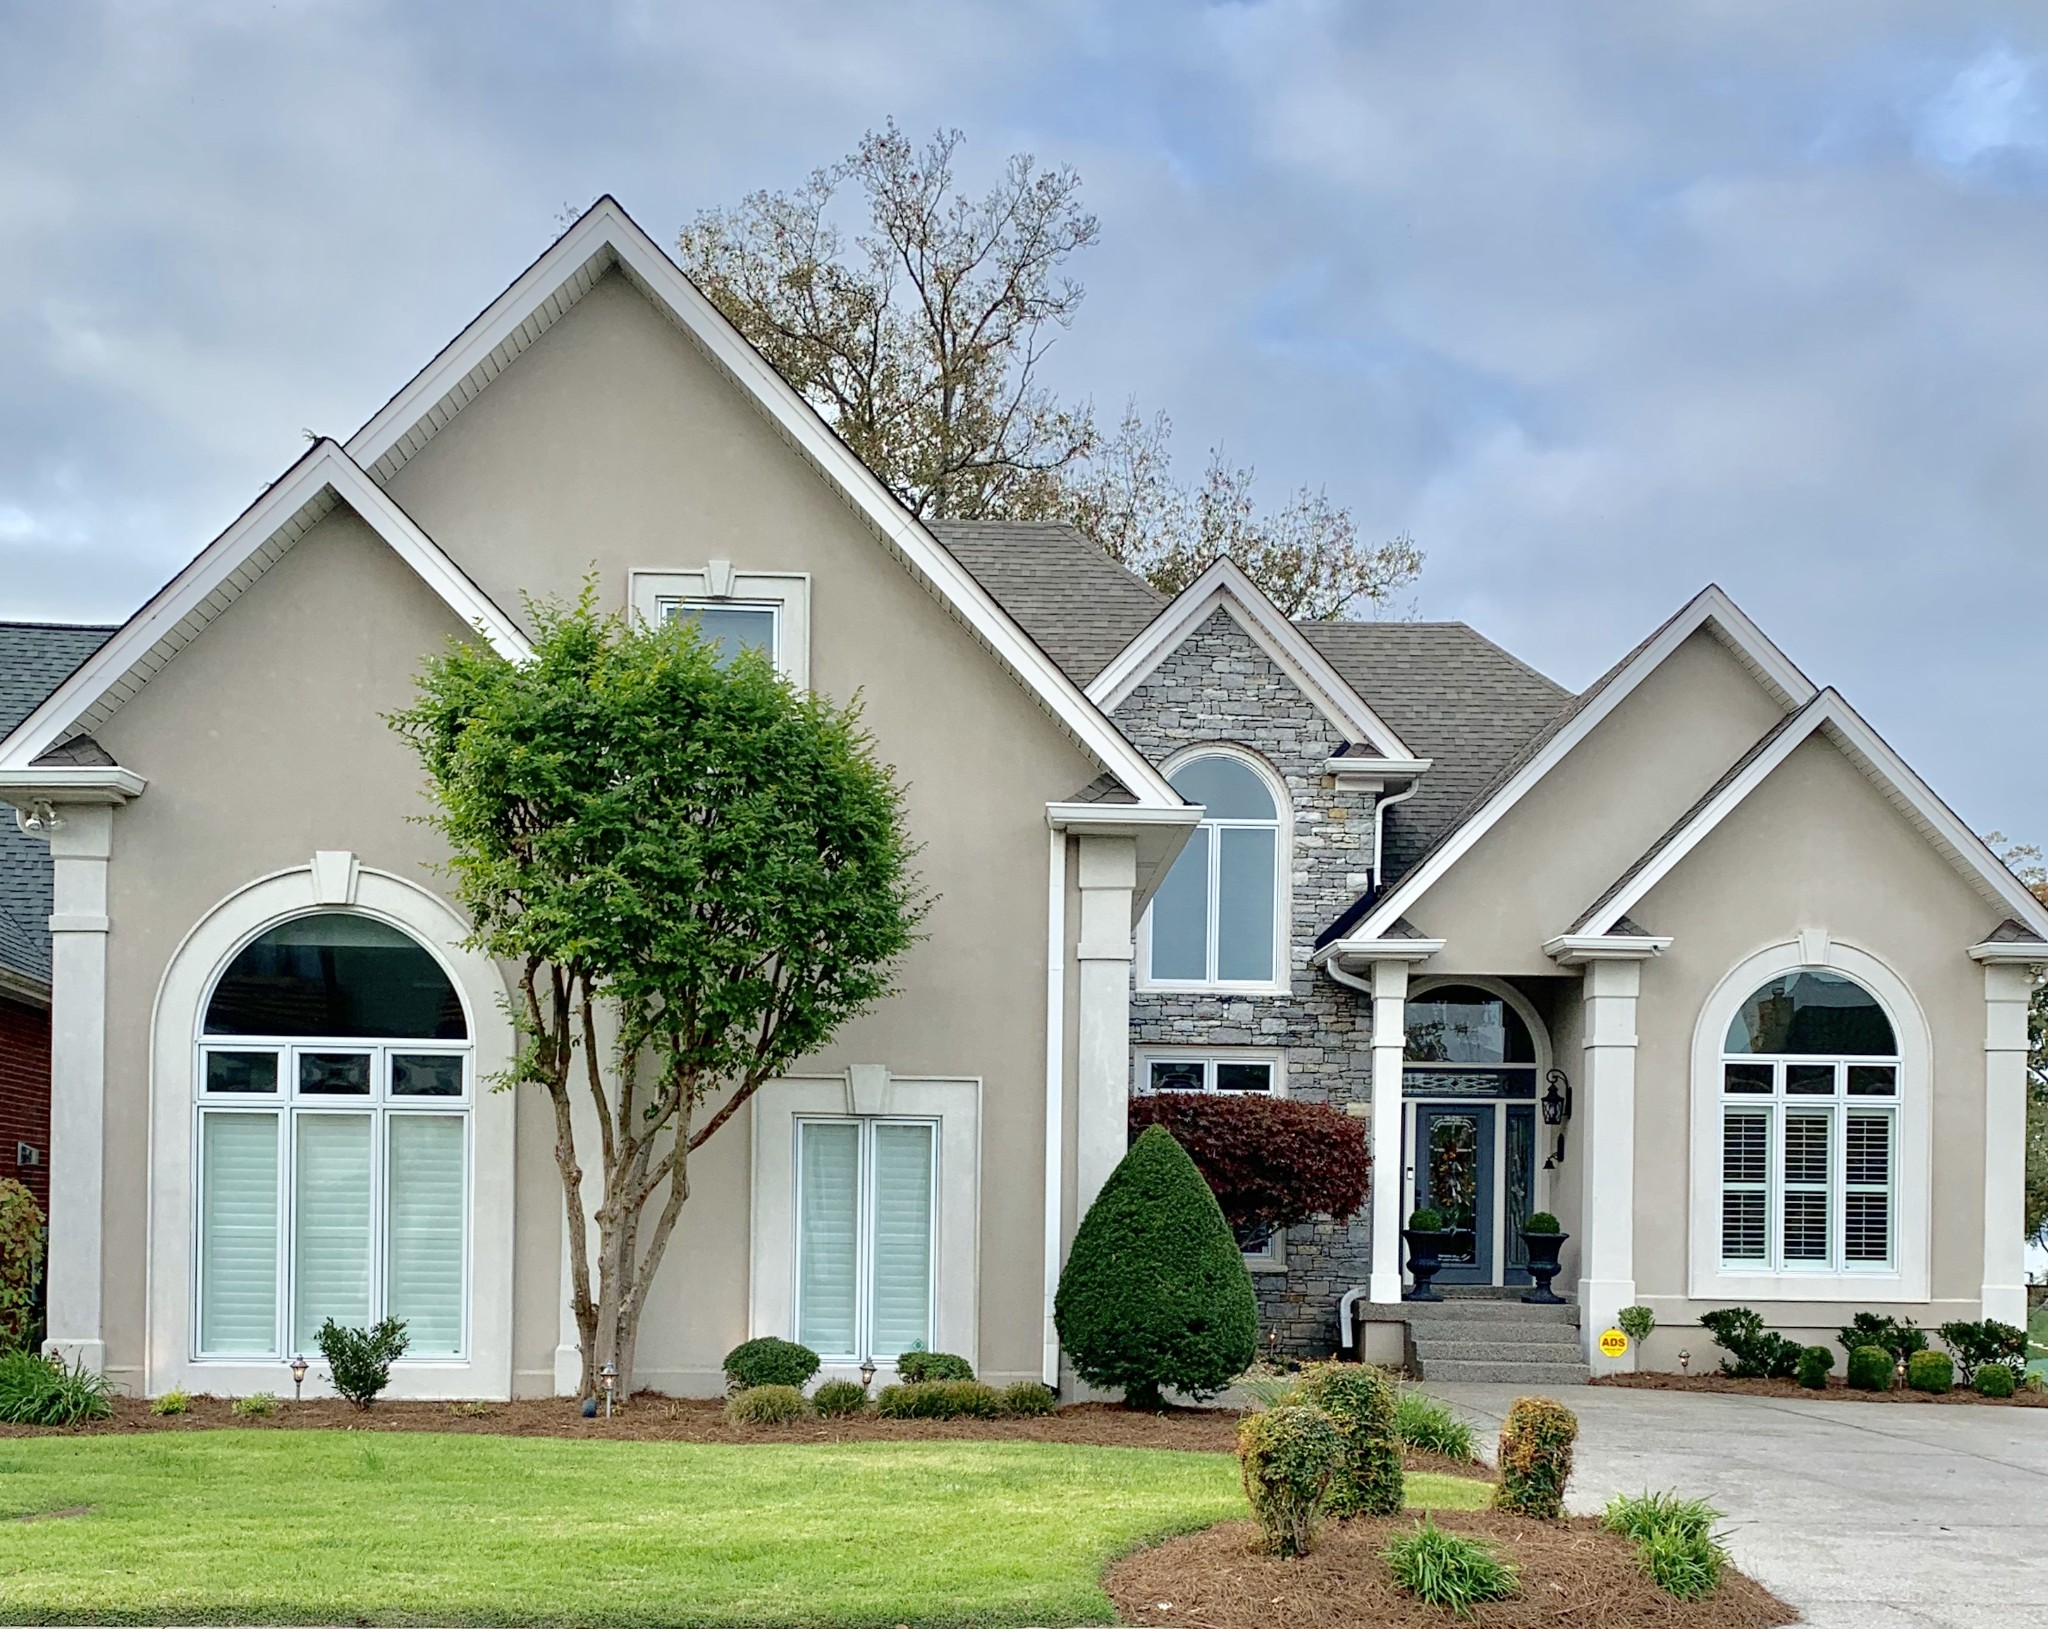 $989,900 - 4Br/5Ba -  for Sale in Villas Of Lakemeade, Old Hickory